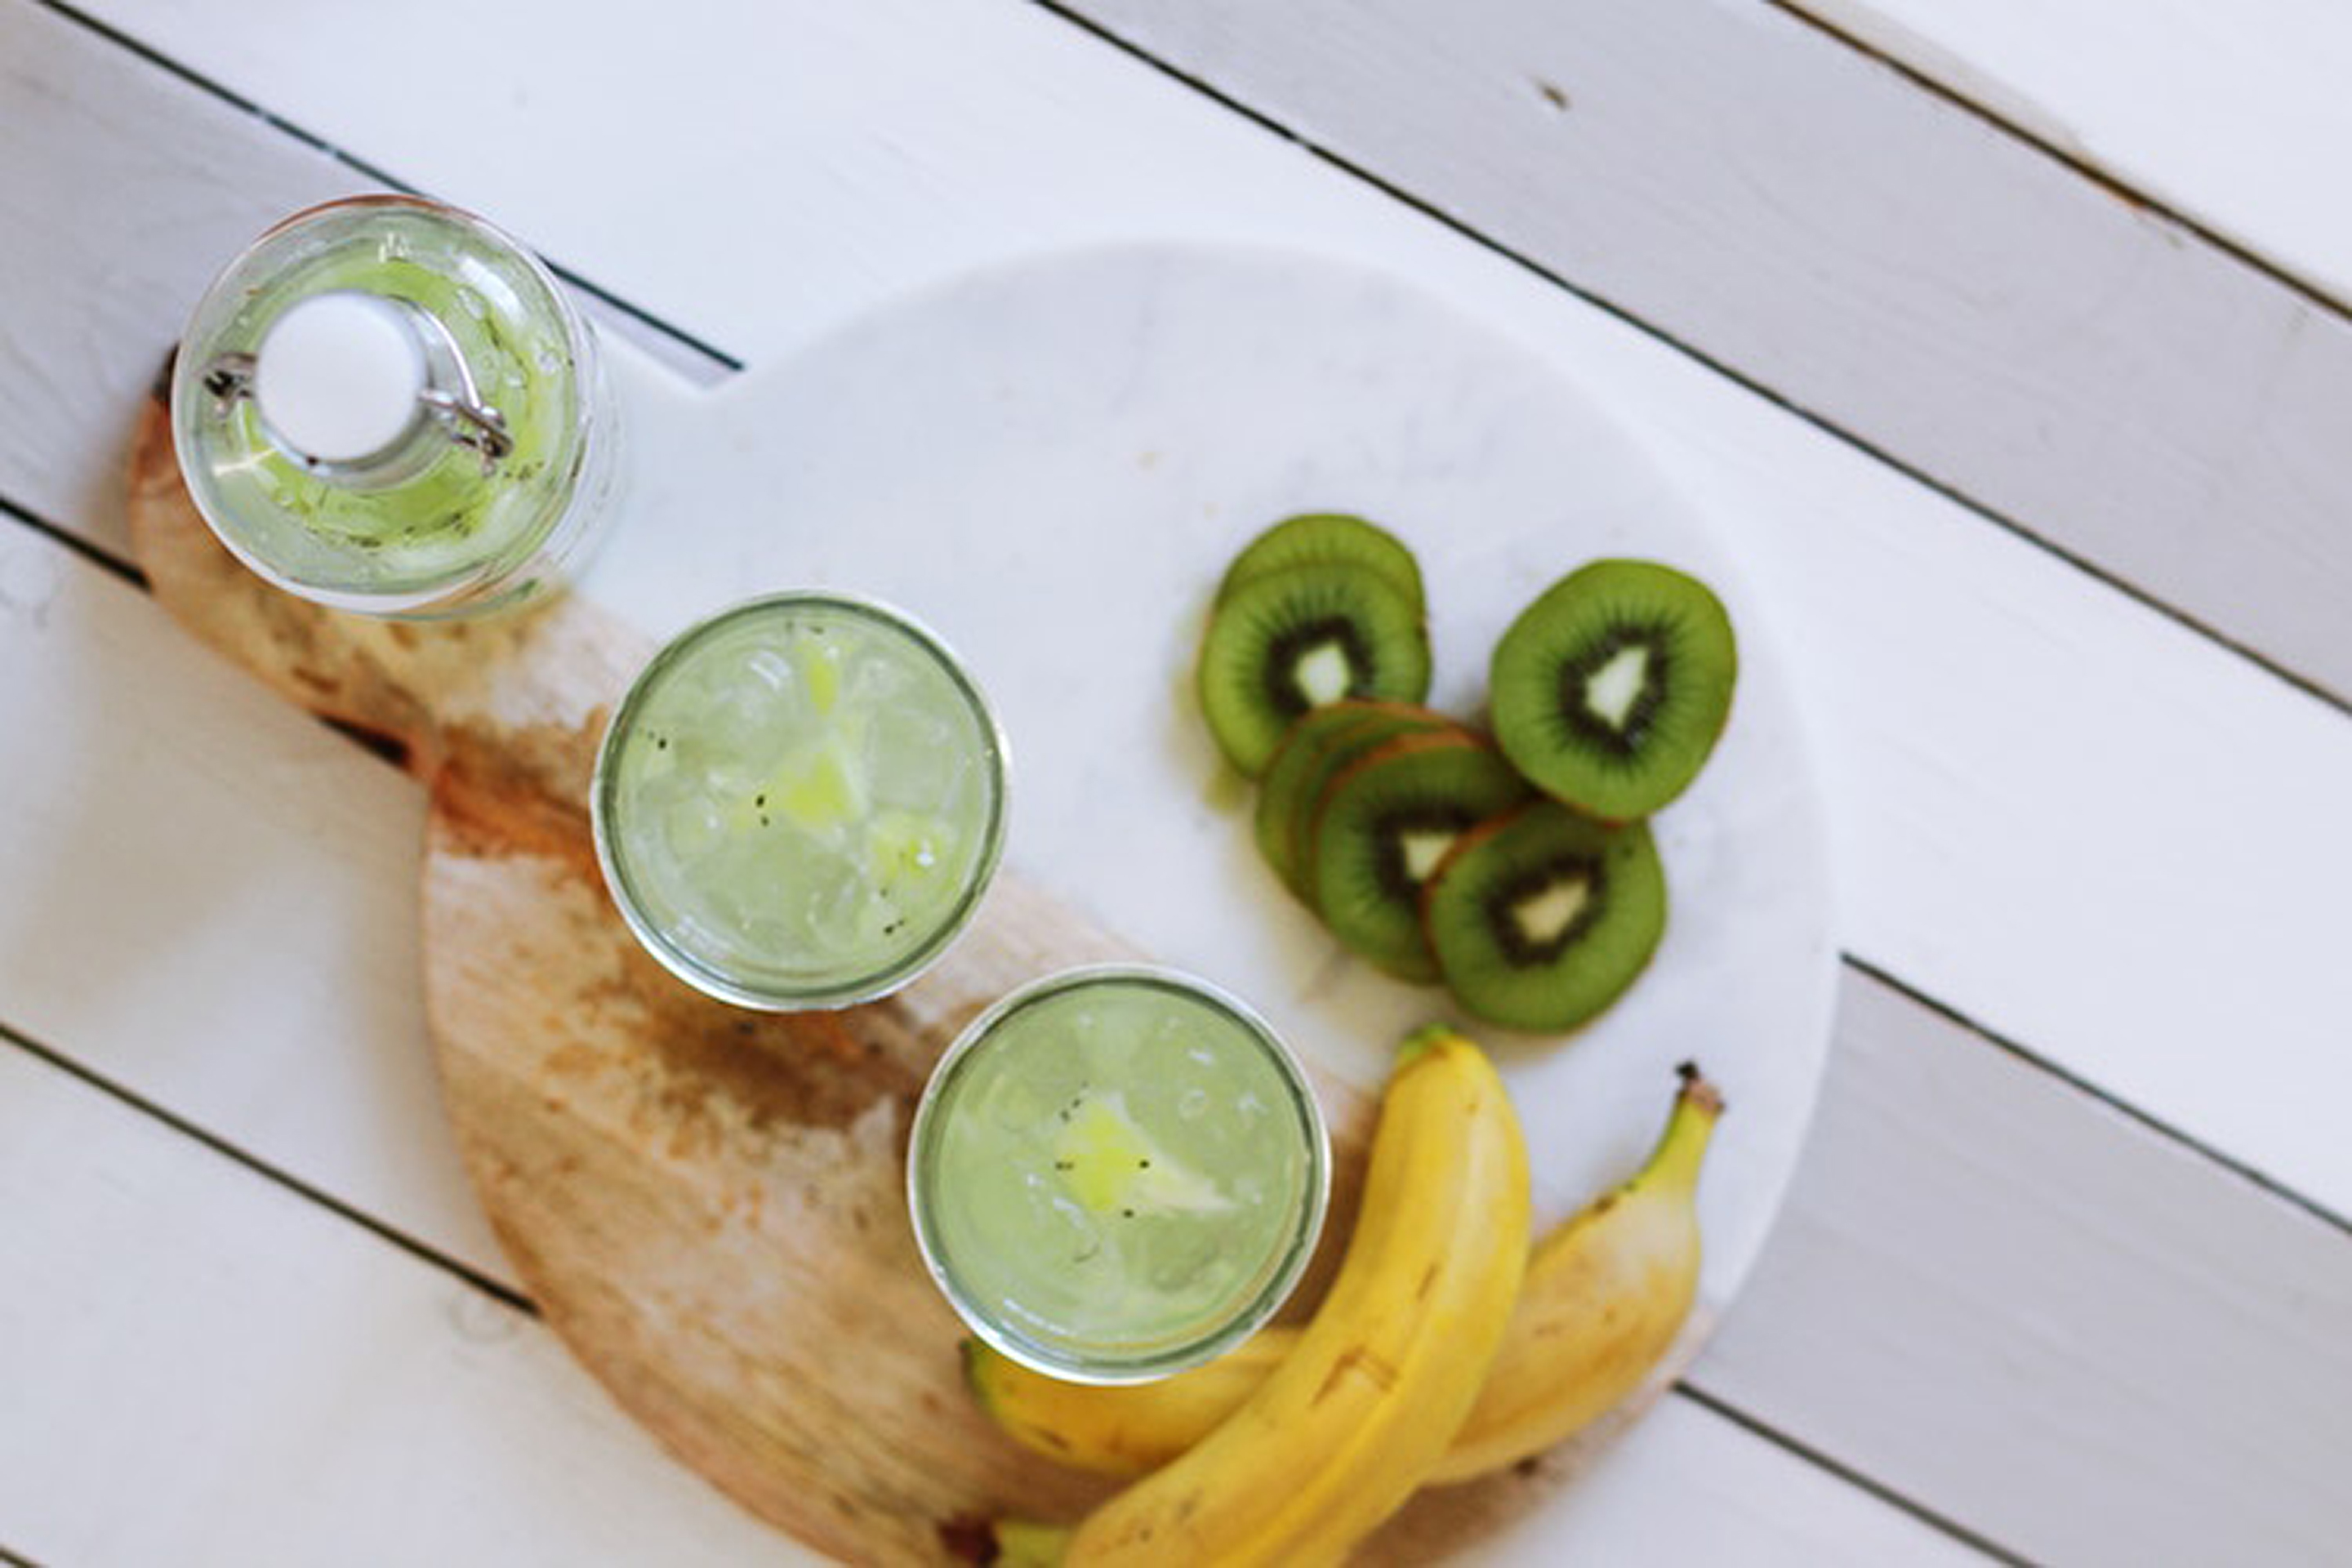 Kiwi, bananas and smoothies on a table